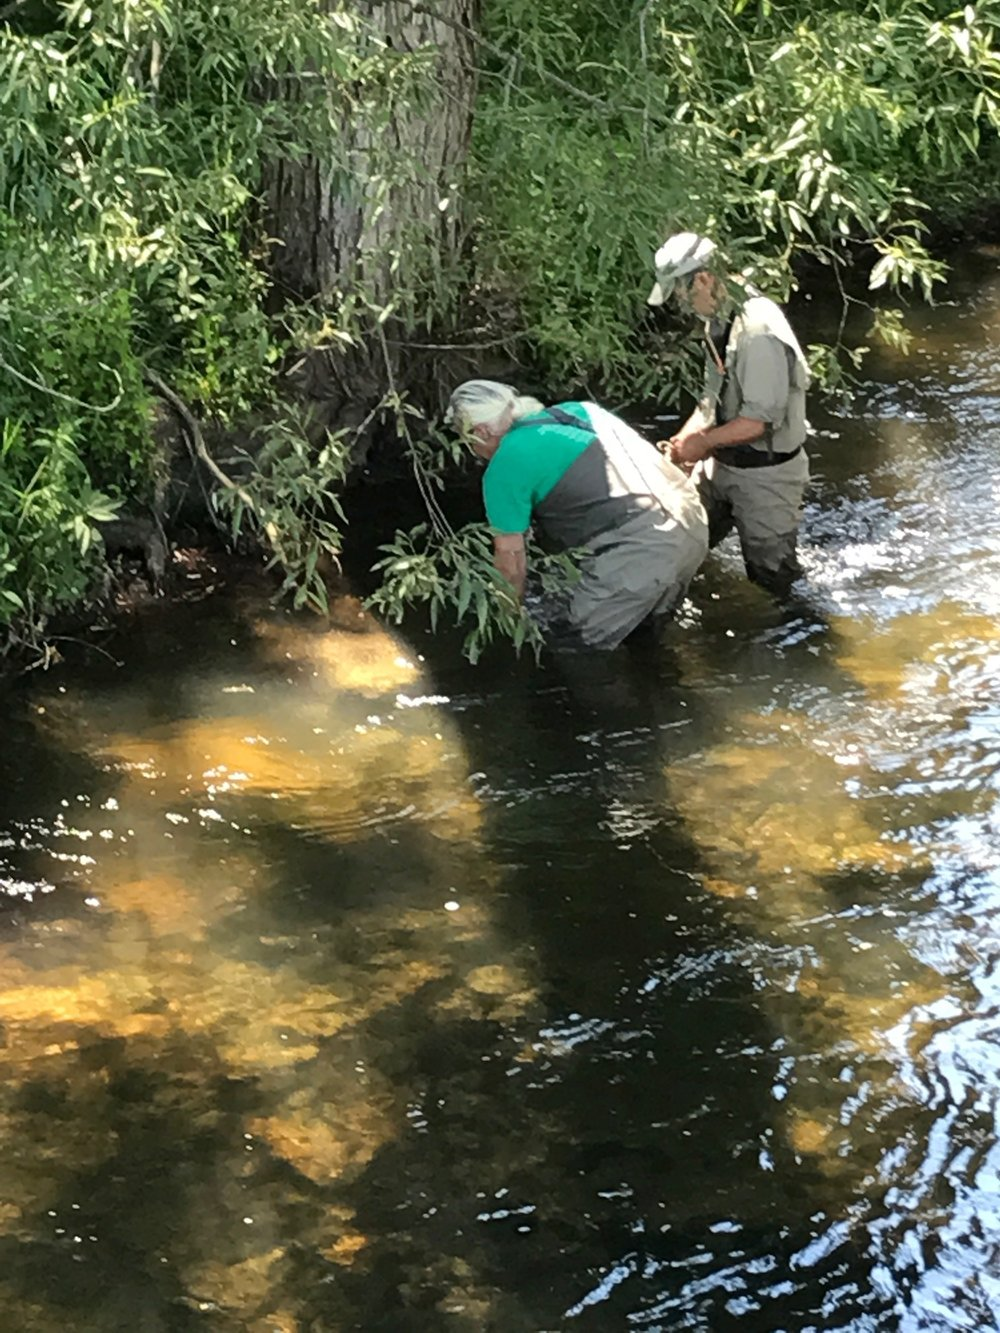 Chairman Matt Pollard and member Don Meyer work to deploy temperature monitors in the Rifle River